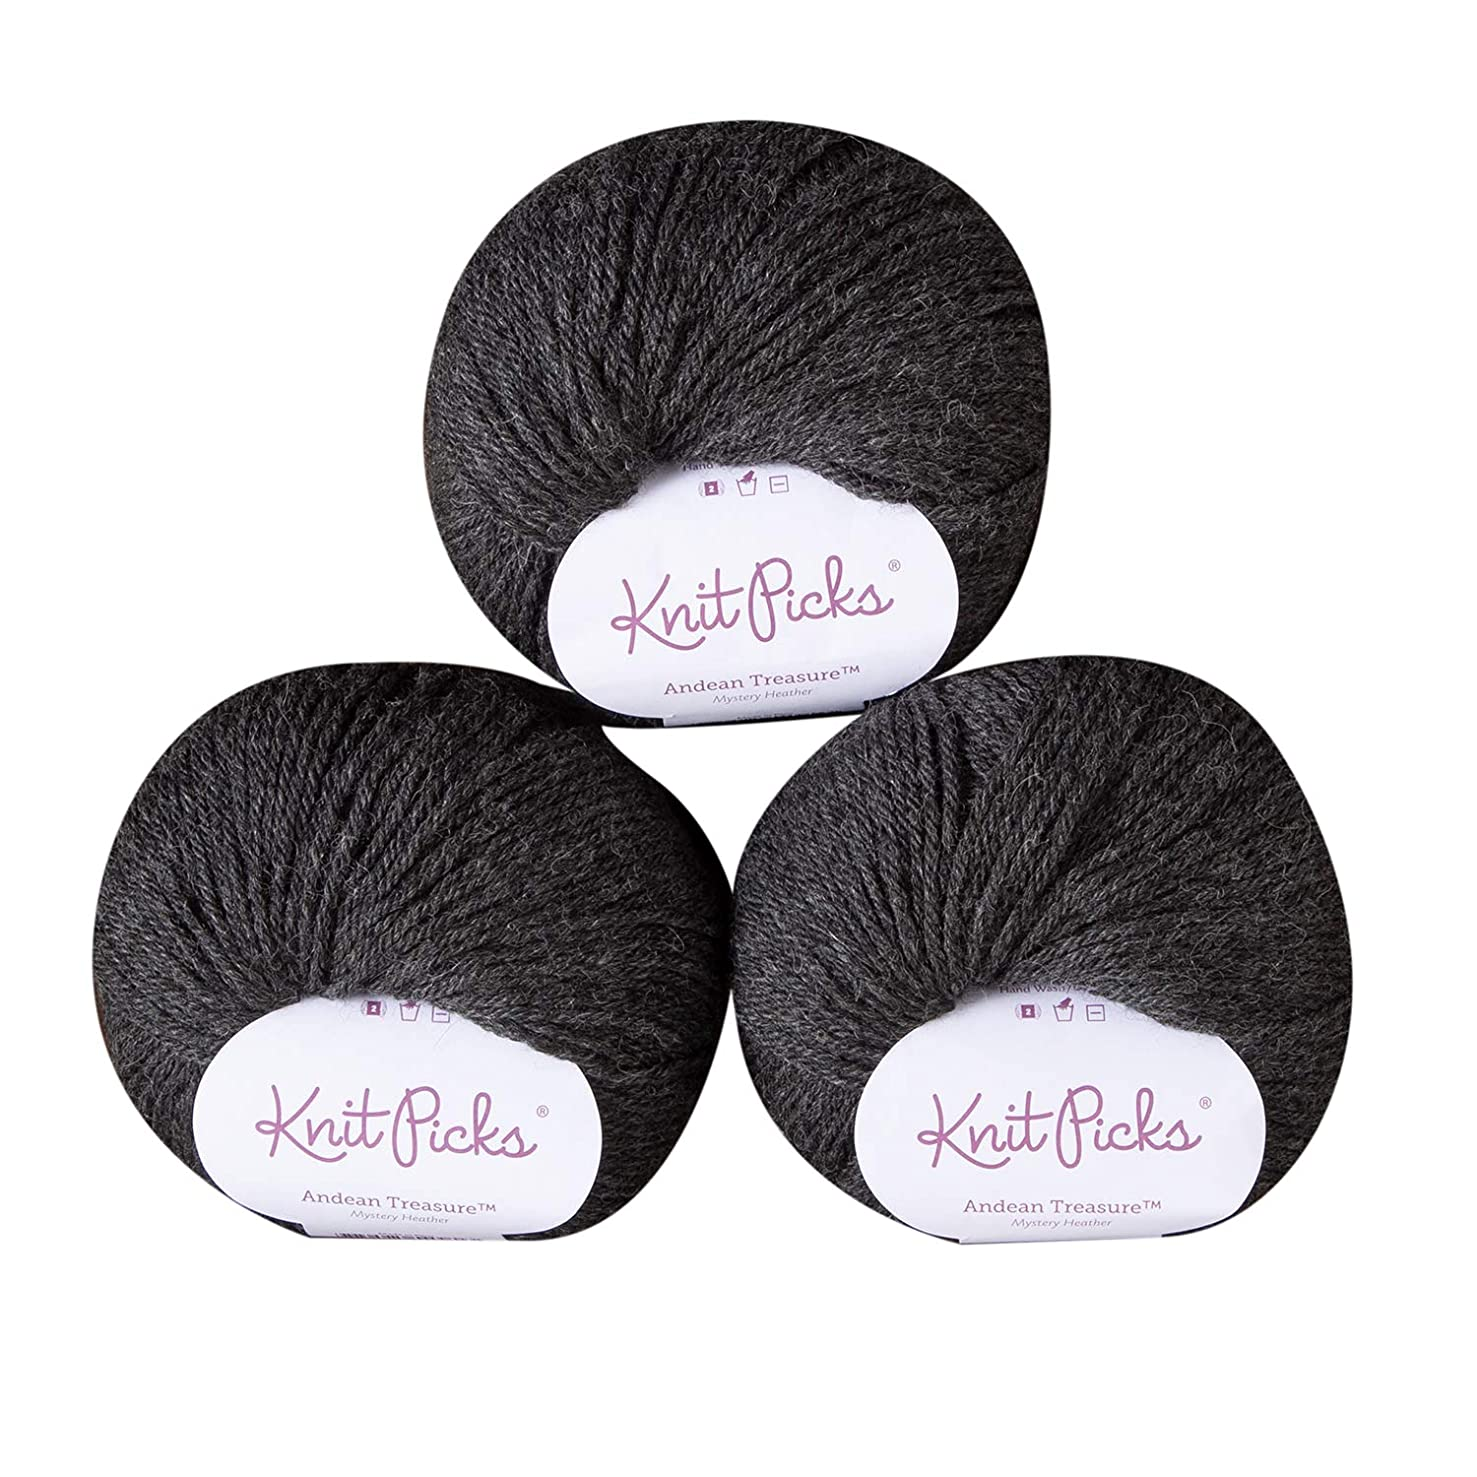 Knit Picks Andean Treasure Baby Alpaca Sport Weight Yarn - 3 Pack with Free Patterns (Mystery Heather)